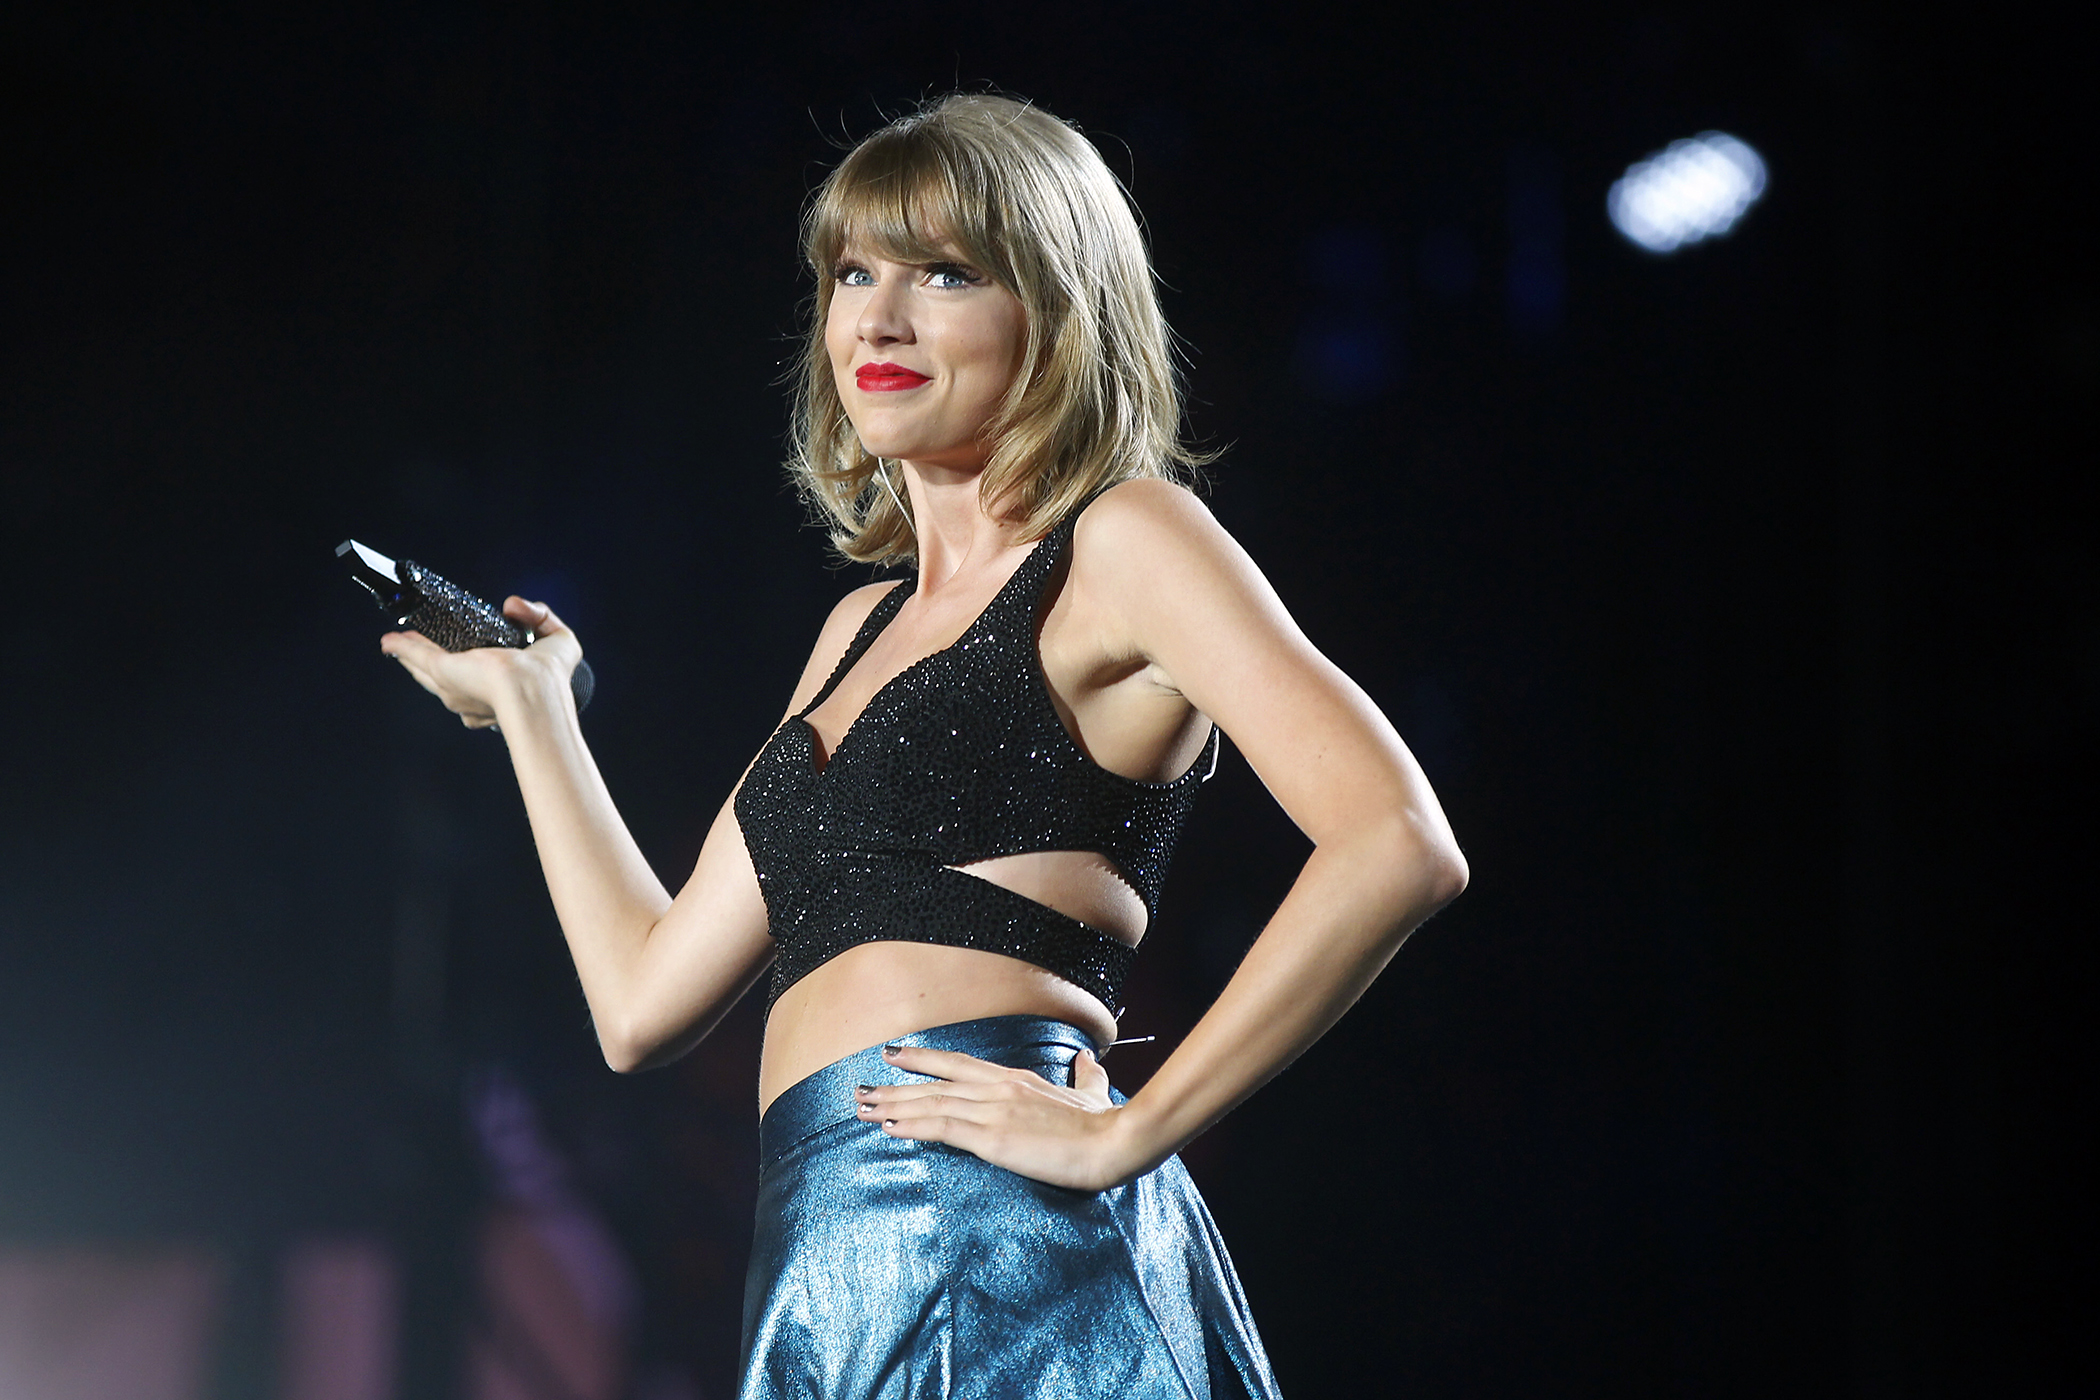 Taylor Swift performs during her 1989 World Tour at Petco Park, San Diego, California.